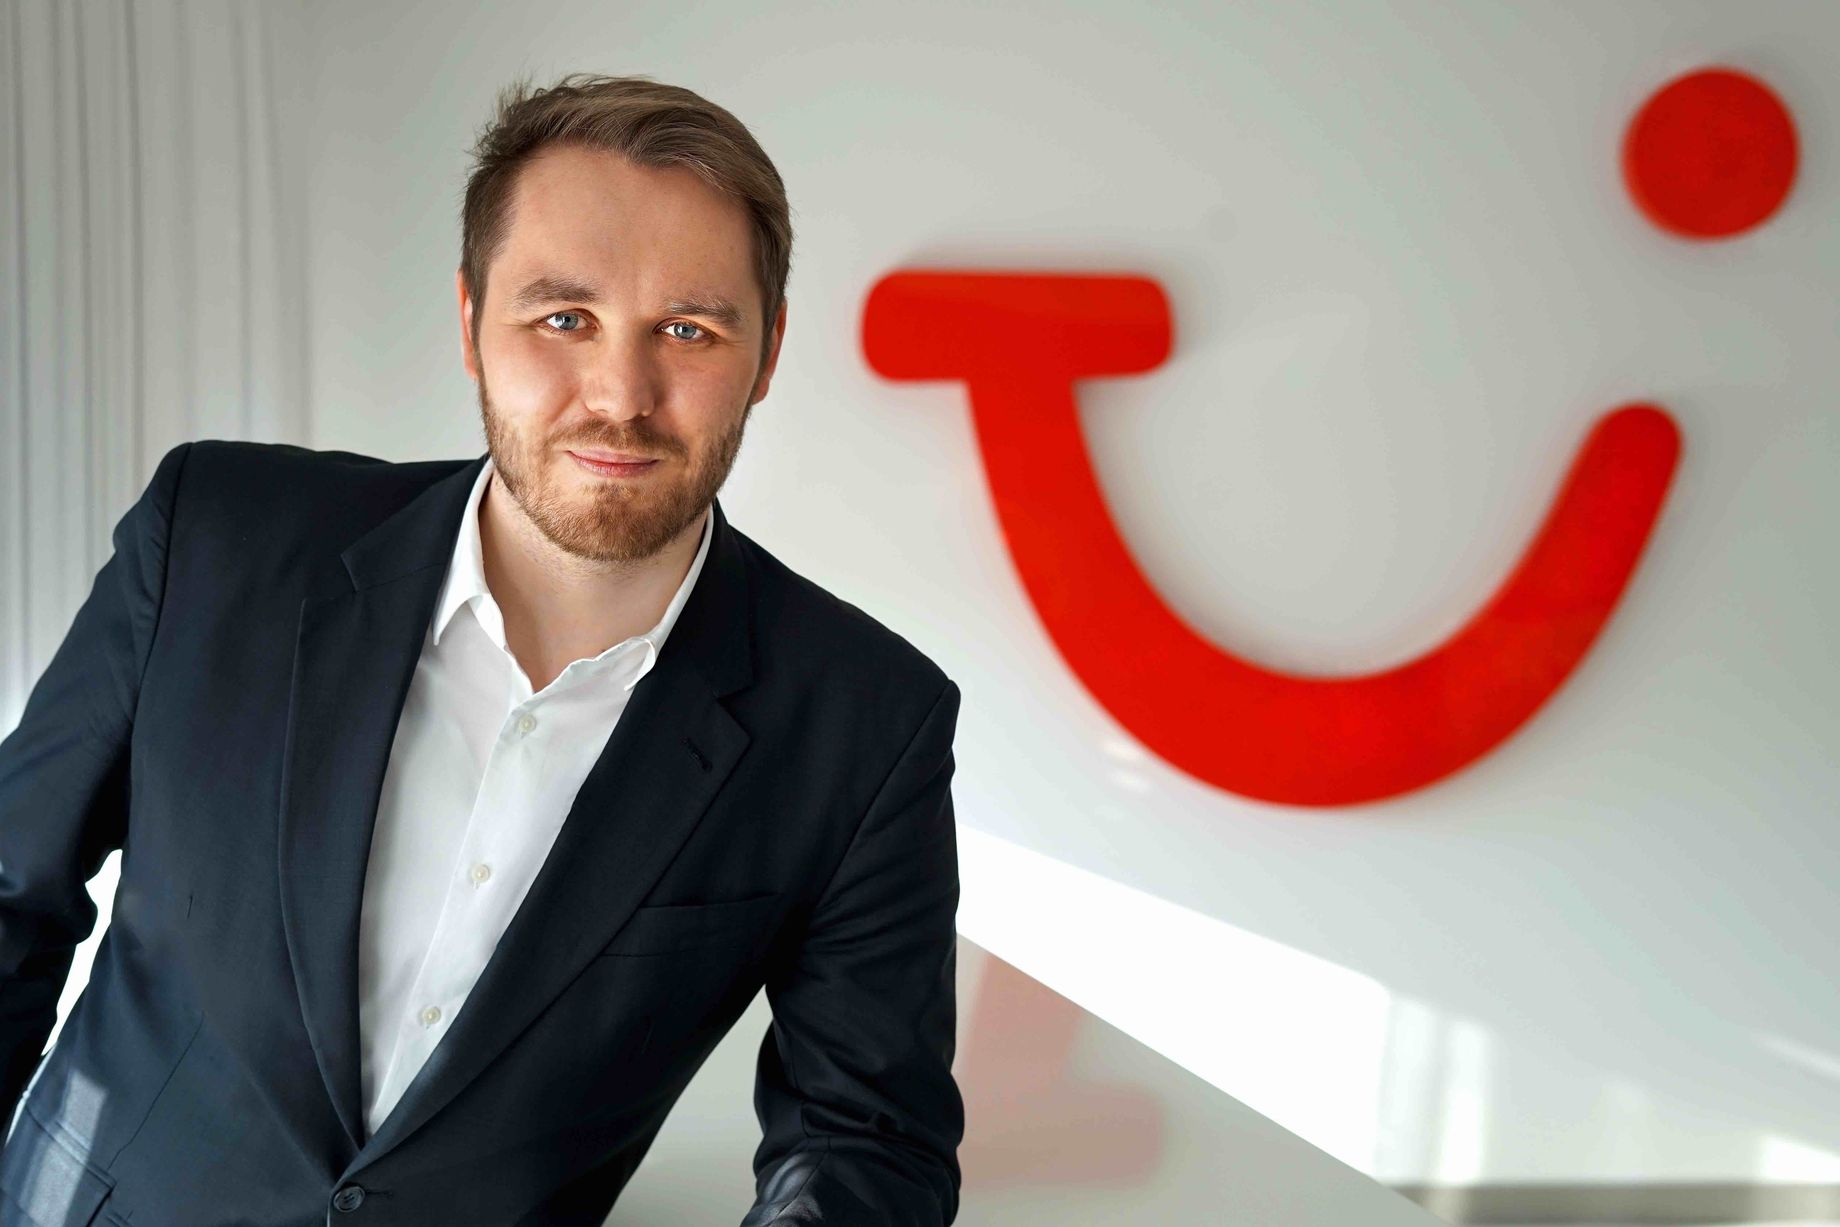 TUI Group, appoint, management, tour operator, Stockholm, Sweden, Nordic, social media, digital, communications